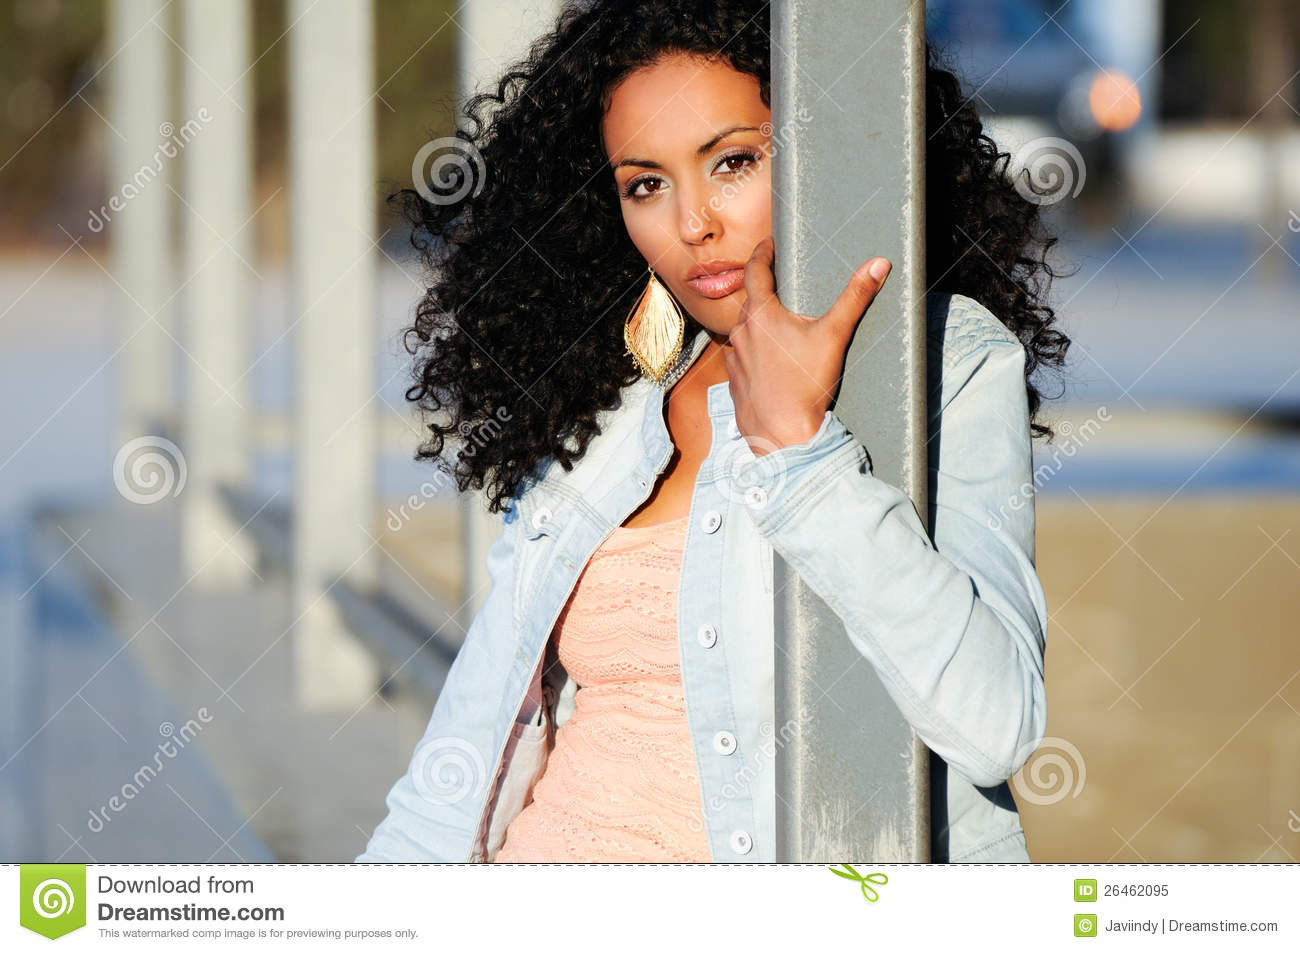 Black Woman, Model Of Fashion In Urban Background Royalty Free Stock ...